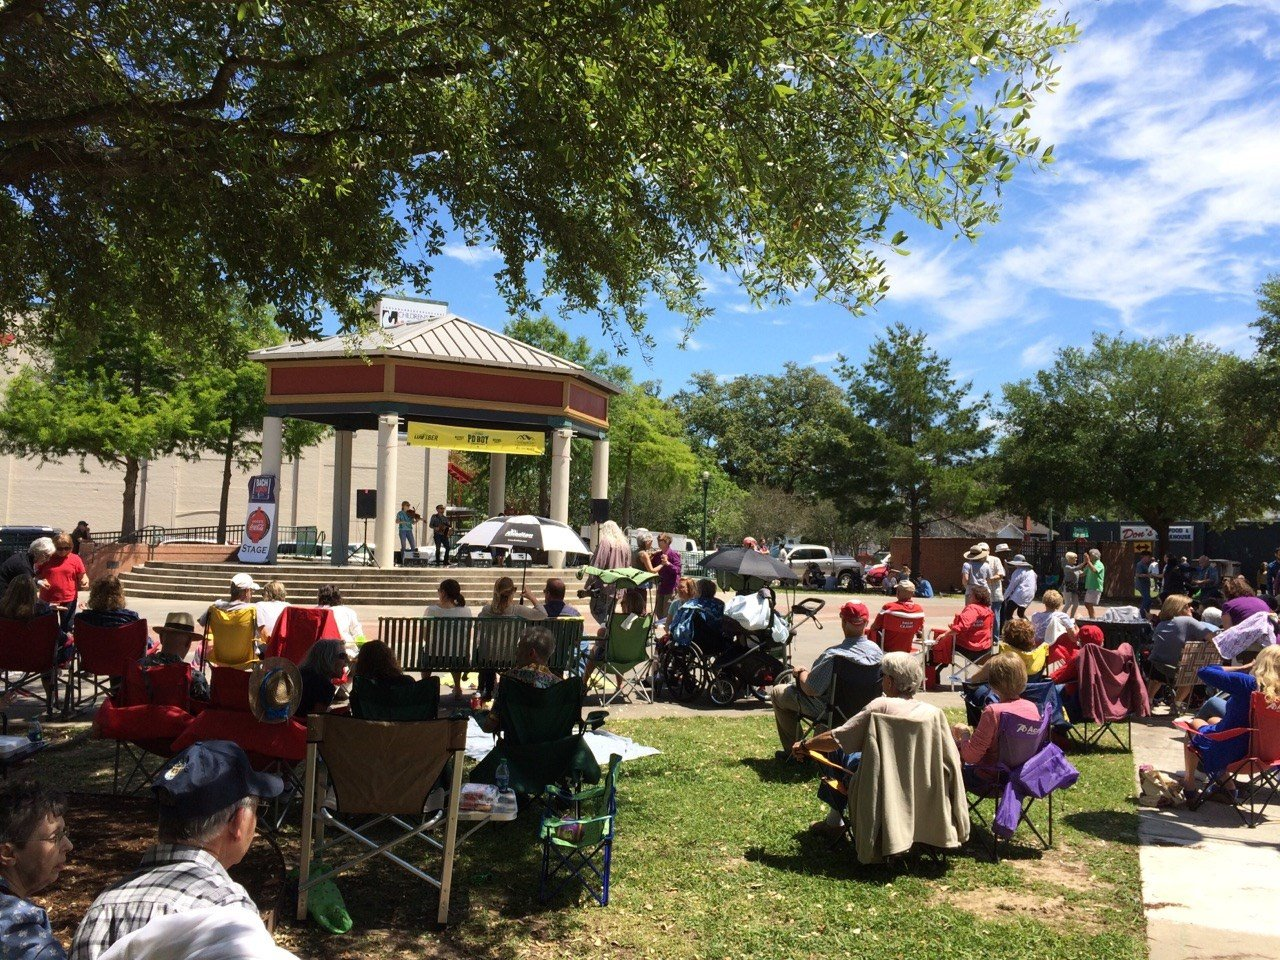 Bach Lunch at Parc Sans Souci April 7, 2017 / KATC